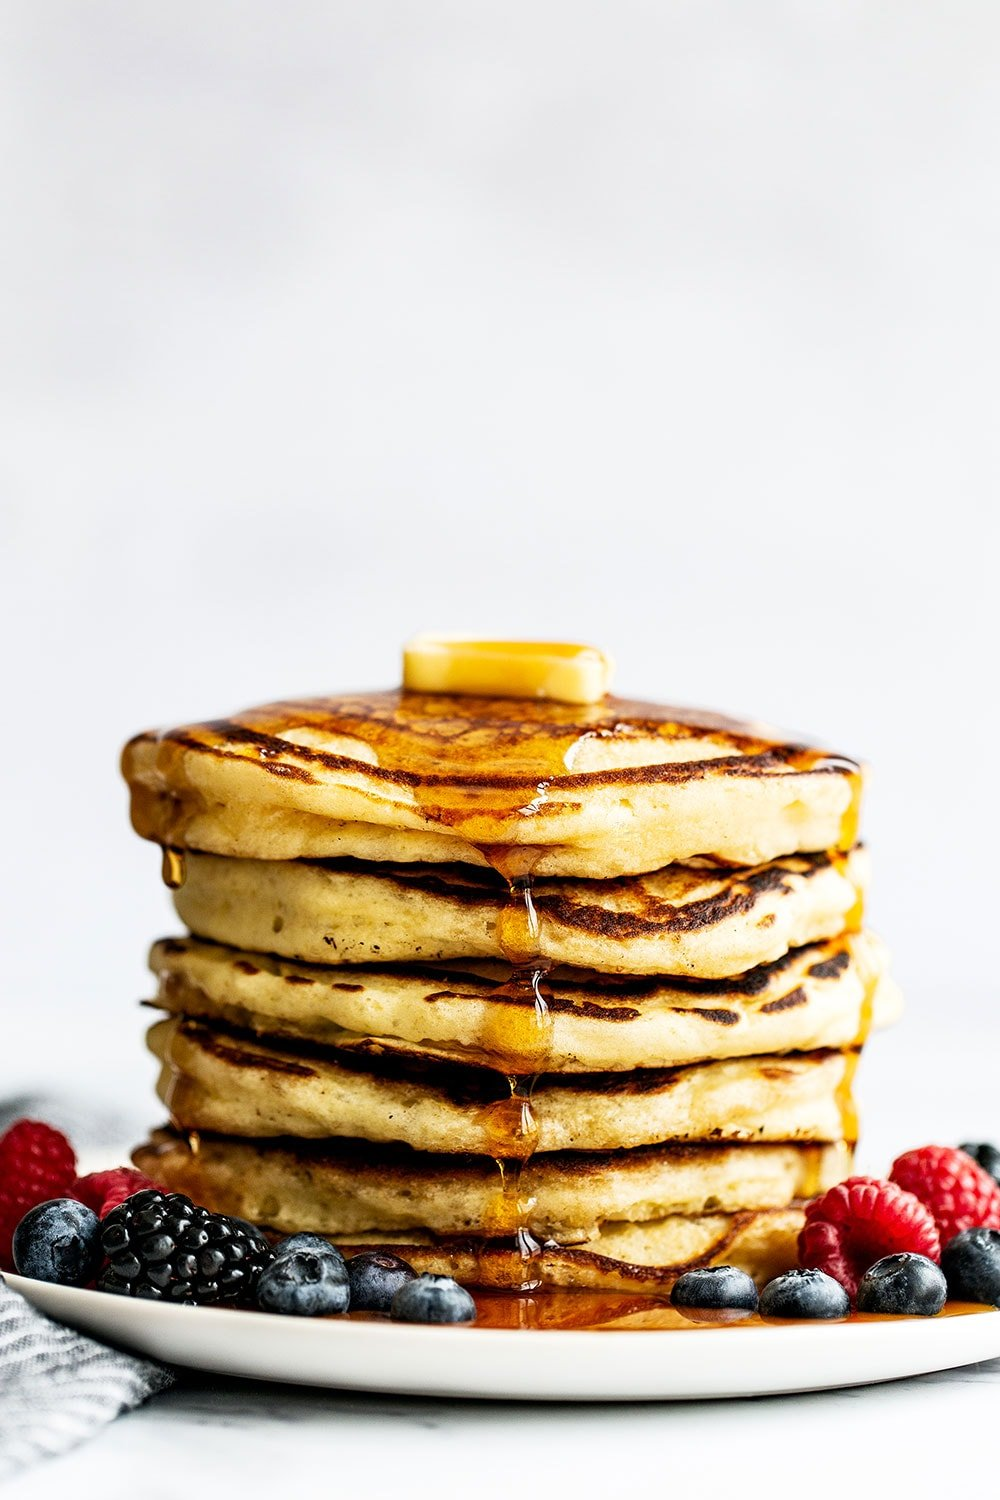 Tall stack of pancakes with butter, maple syrup, and berries